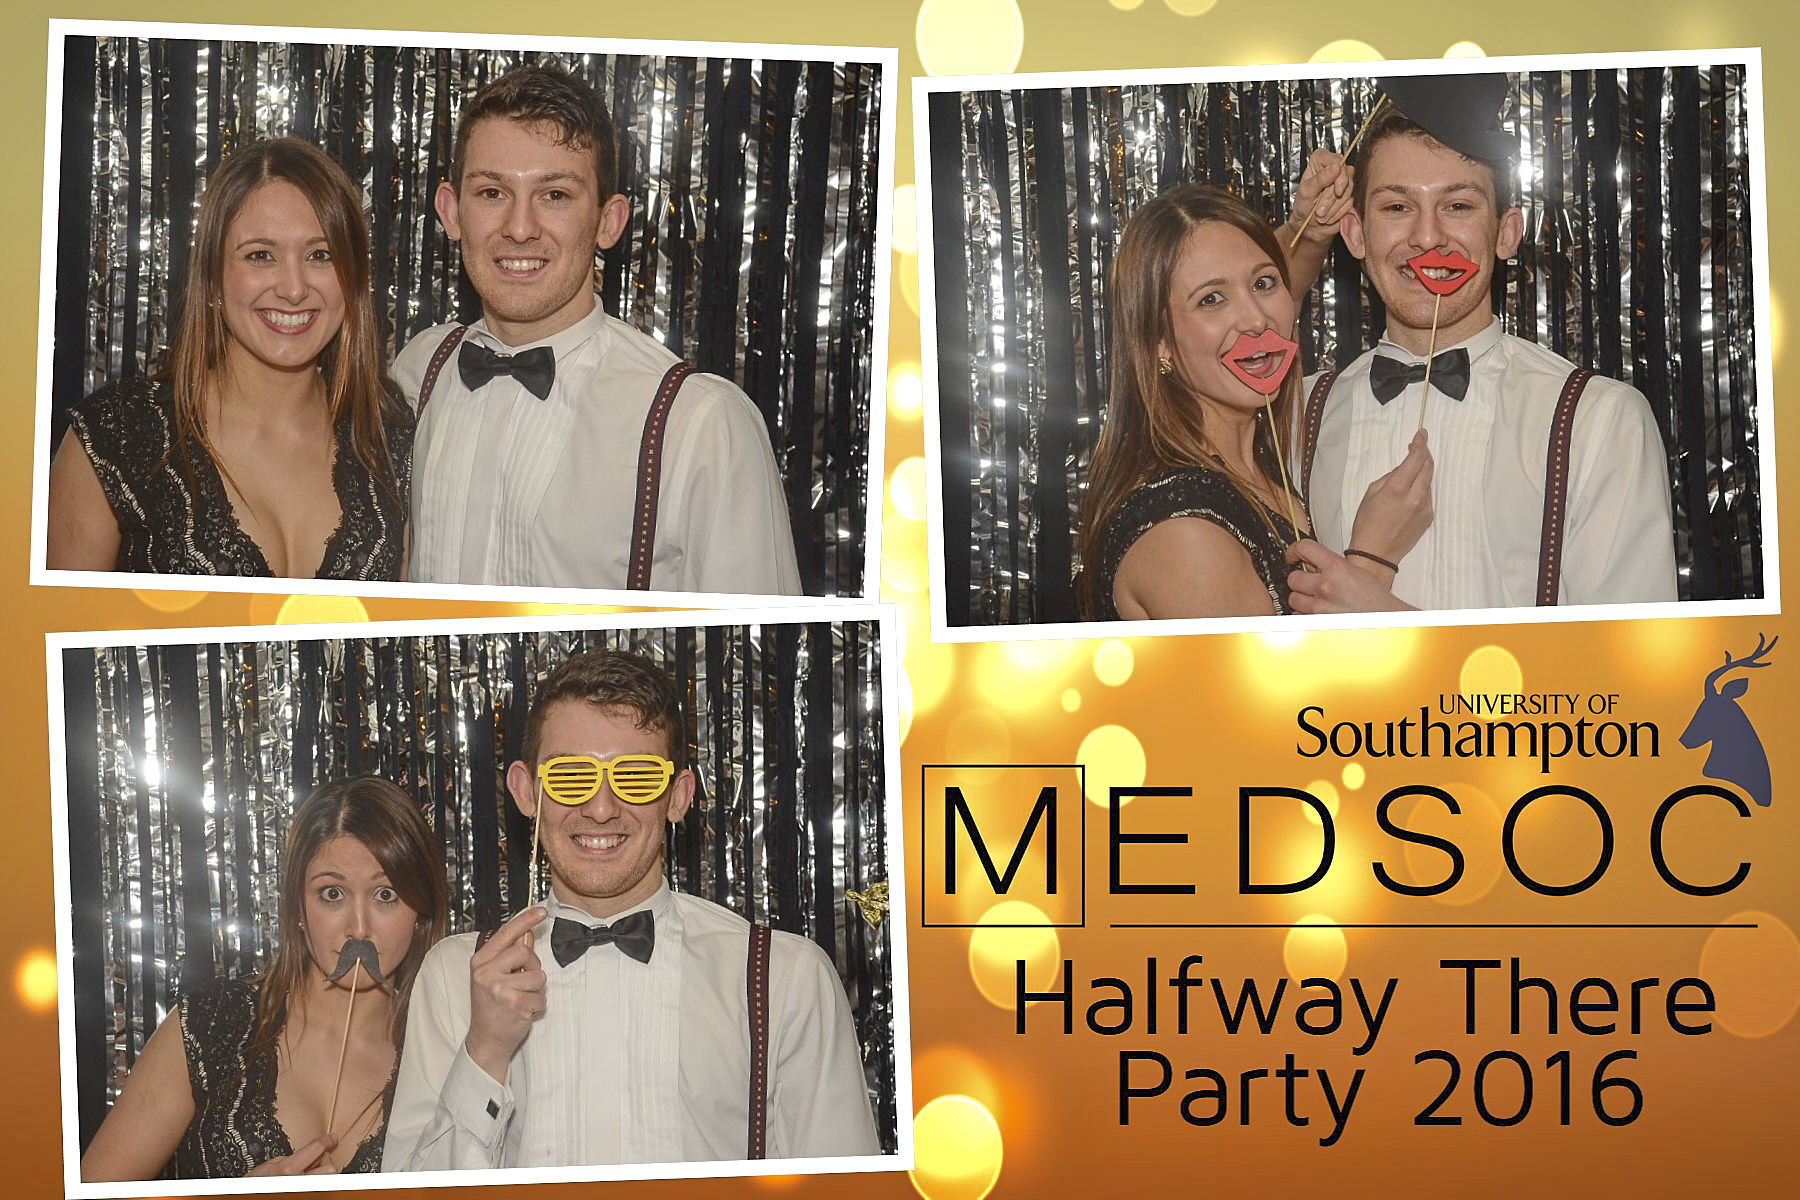 MedSoc Halfway There Party 2016 DS234418.jpg